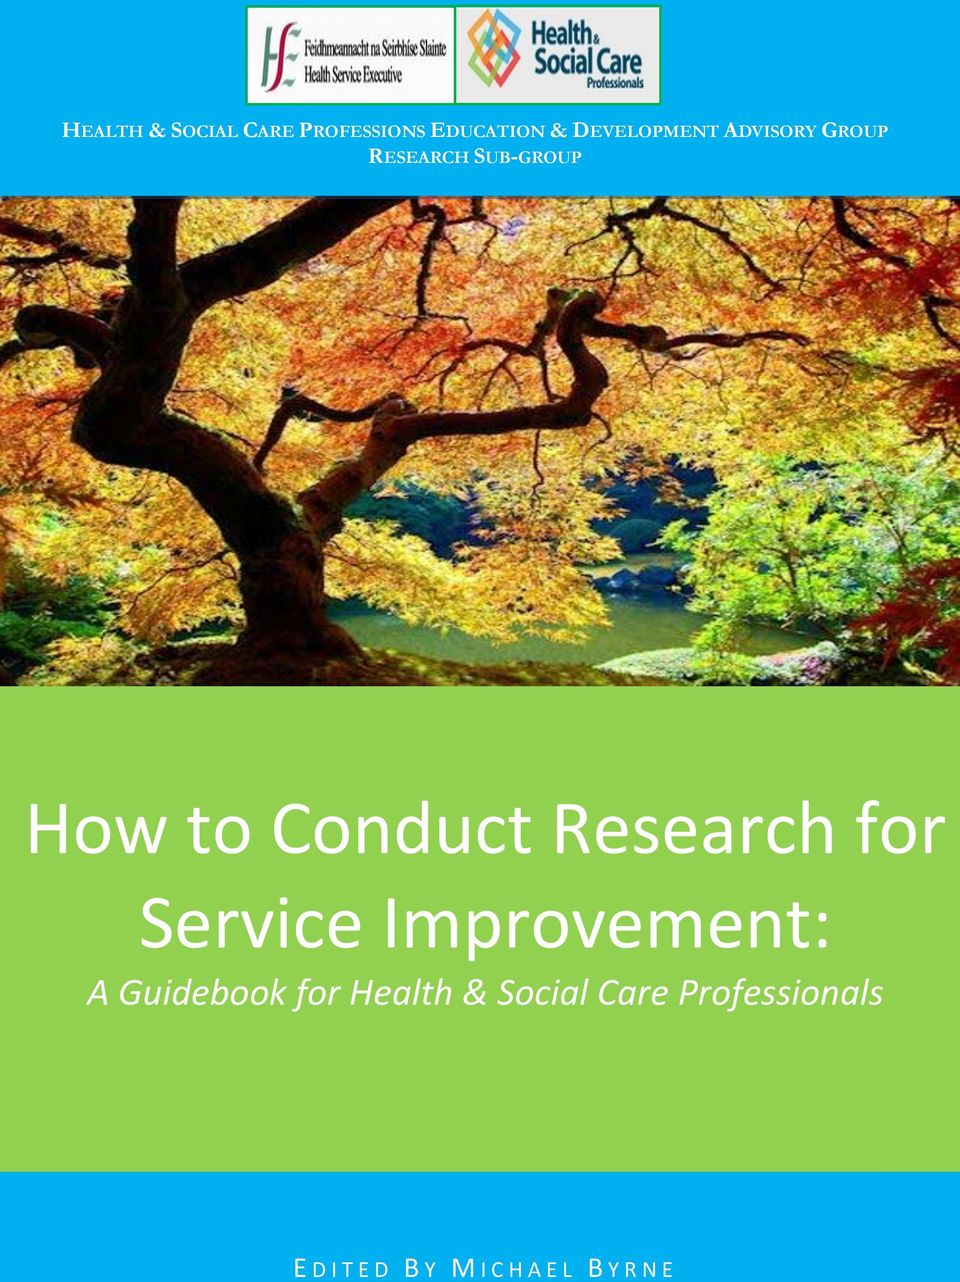 for Service Improvement: A Guidebook for Health & Social